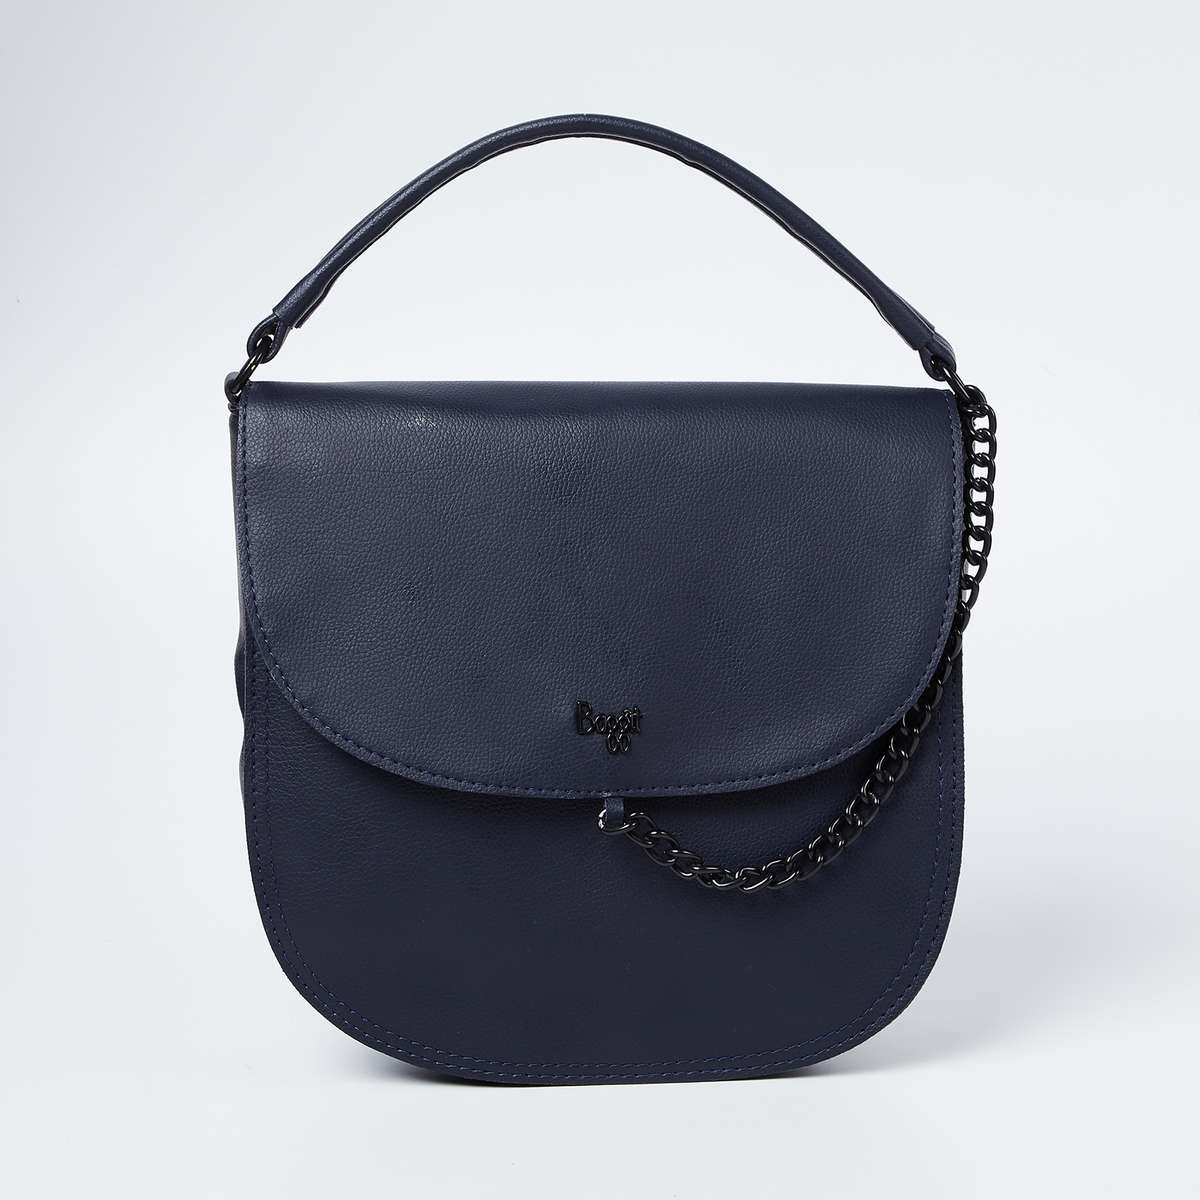 2.BAGGIT Textured Sling Bag with Detachable Strap